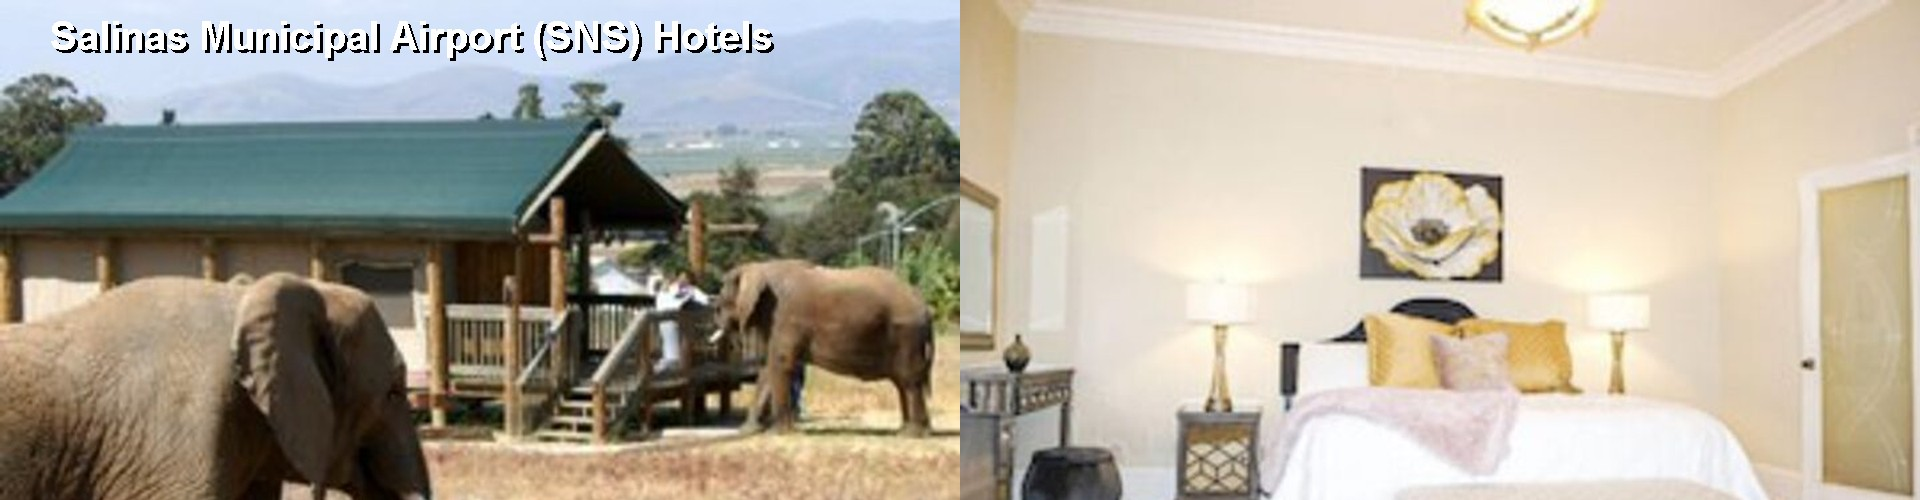 4 Best Hotels near Salinas Municipal Airport (SNS)